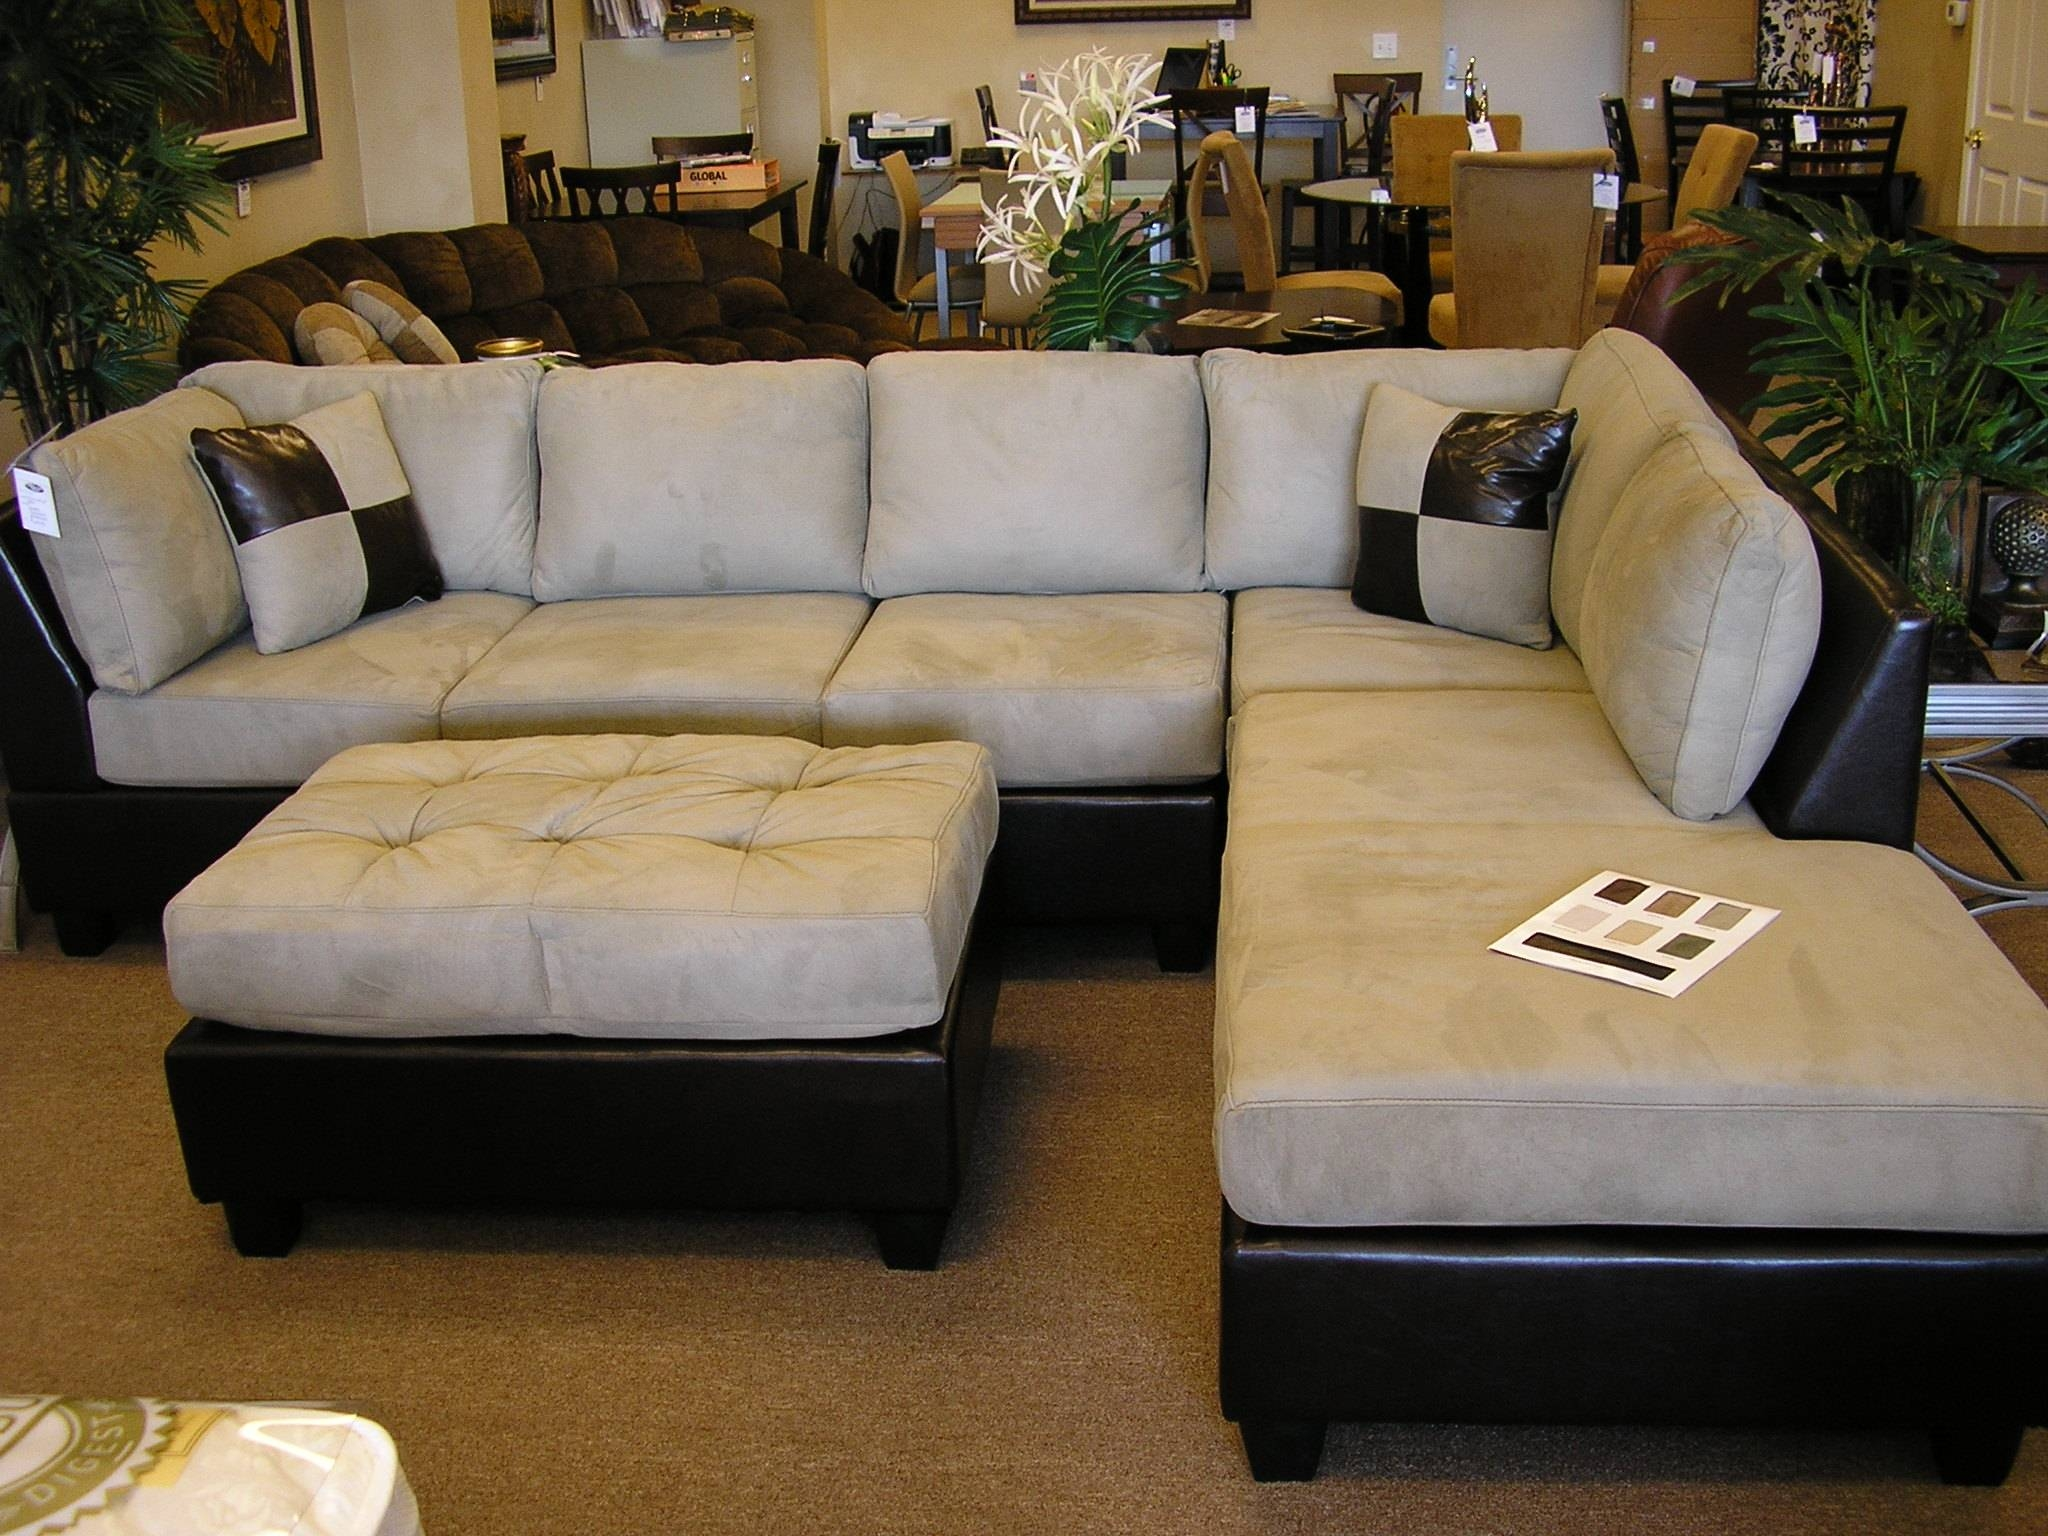 Furniture: Beautiful Sectional Sofas Cheap For Living Room for Leather Lounge Sofas (Image 7 of 30)